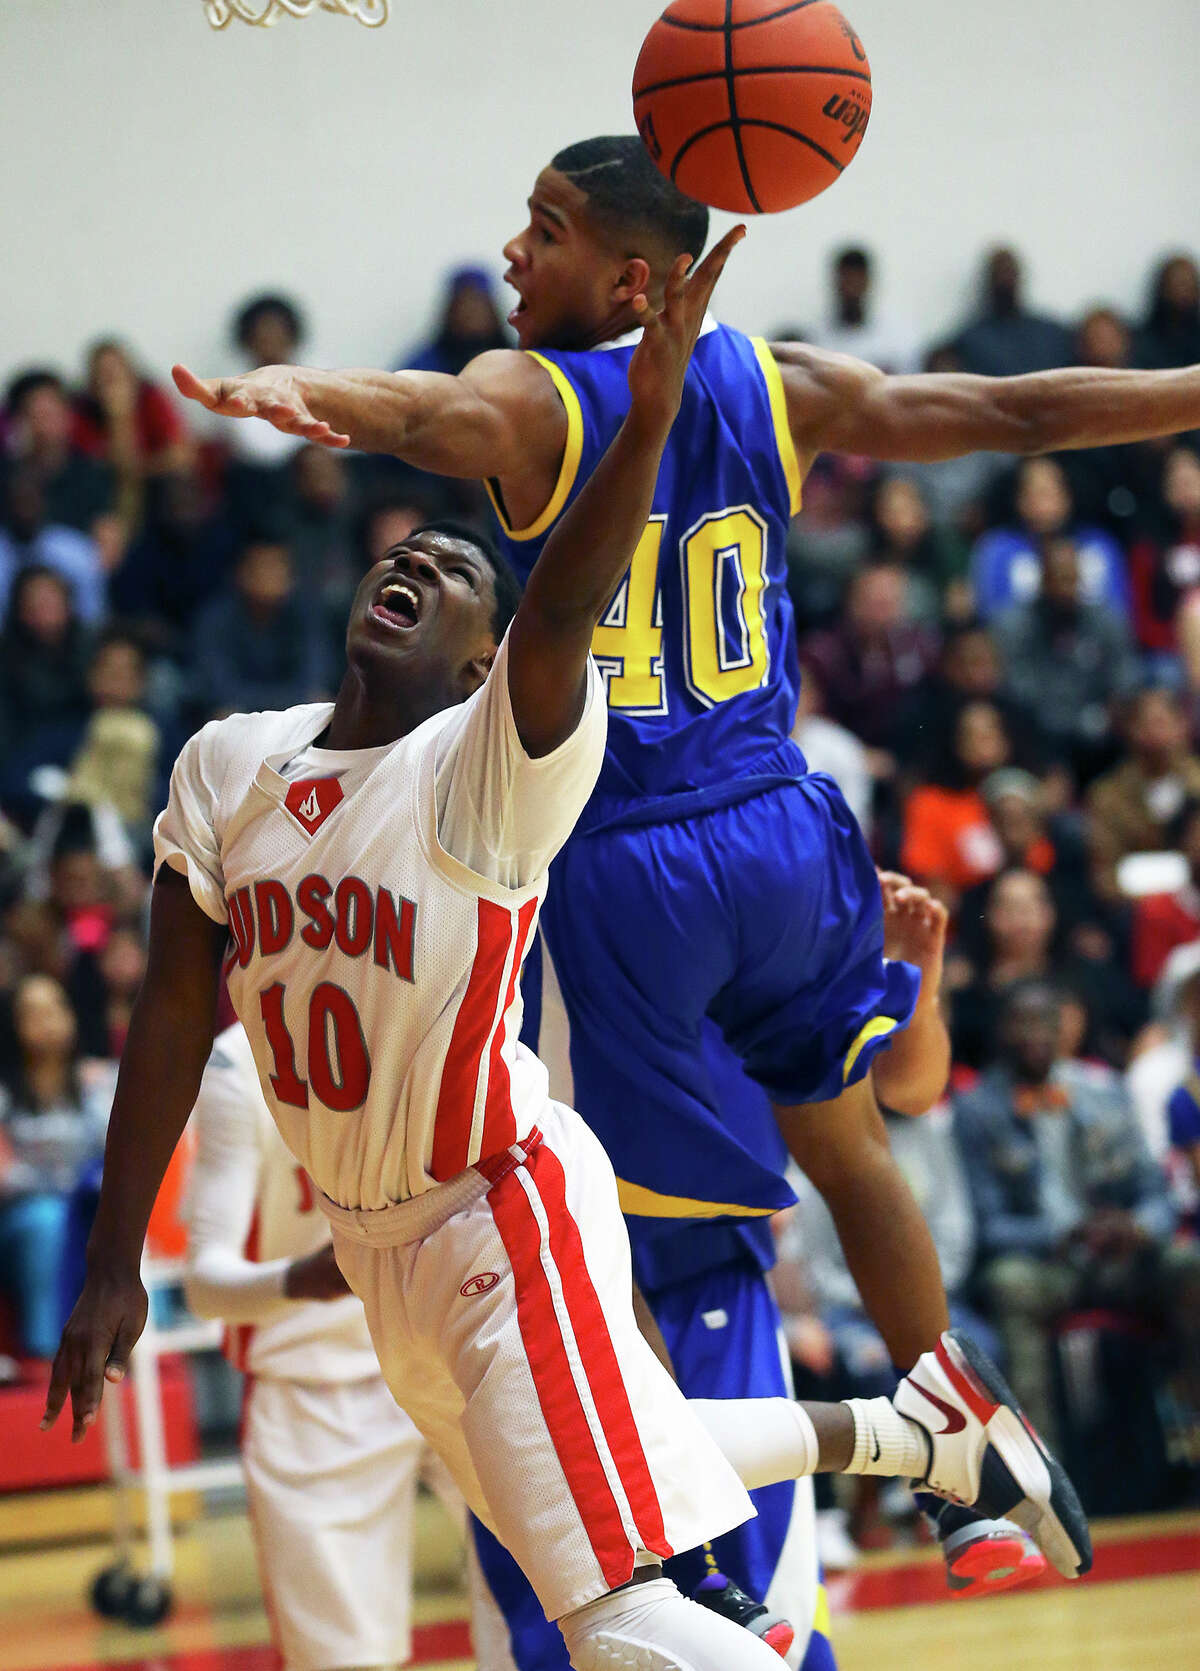 Rocket guard Devin Blair stretches away from Frank Harris for a layup in the first half.